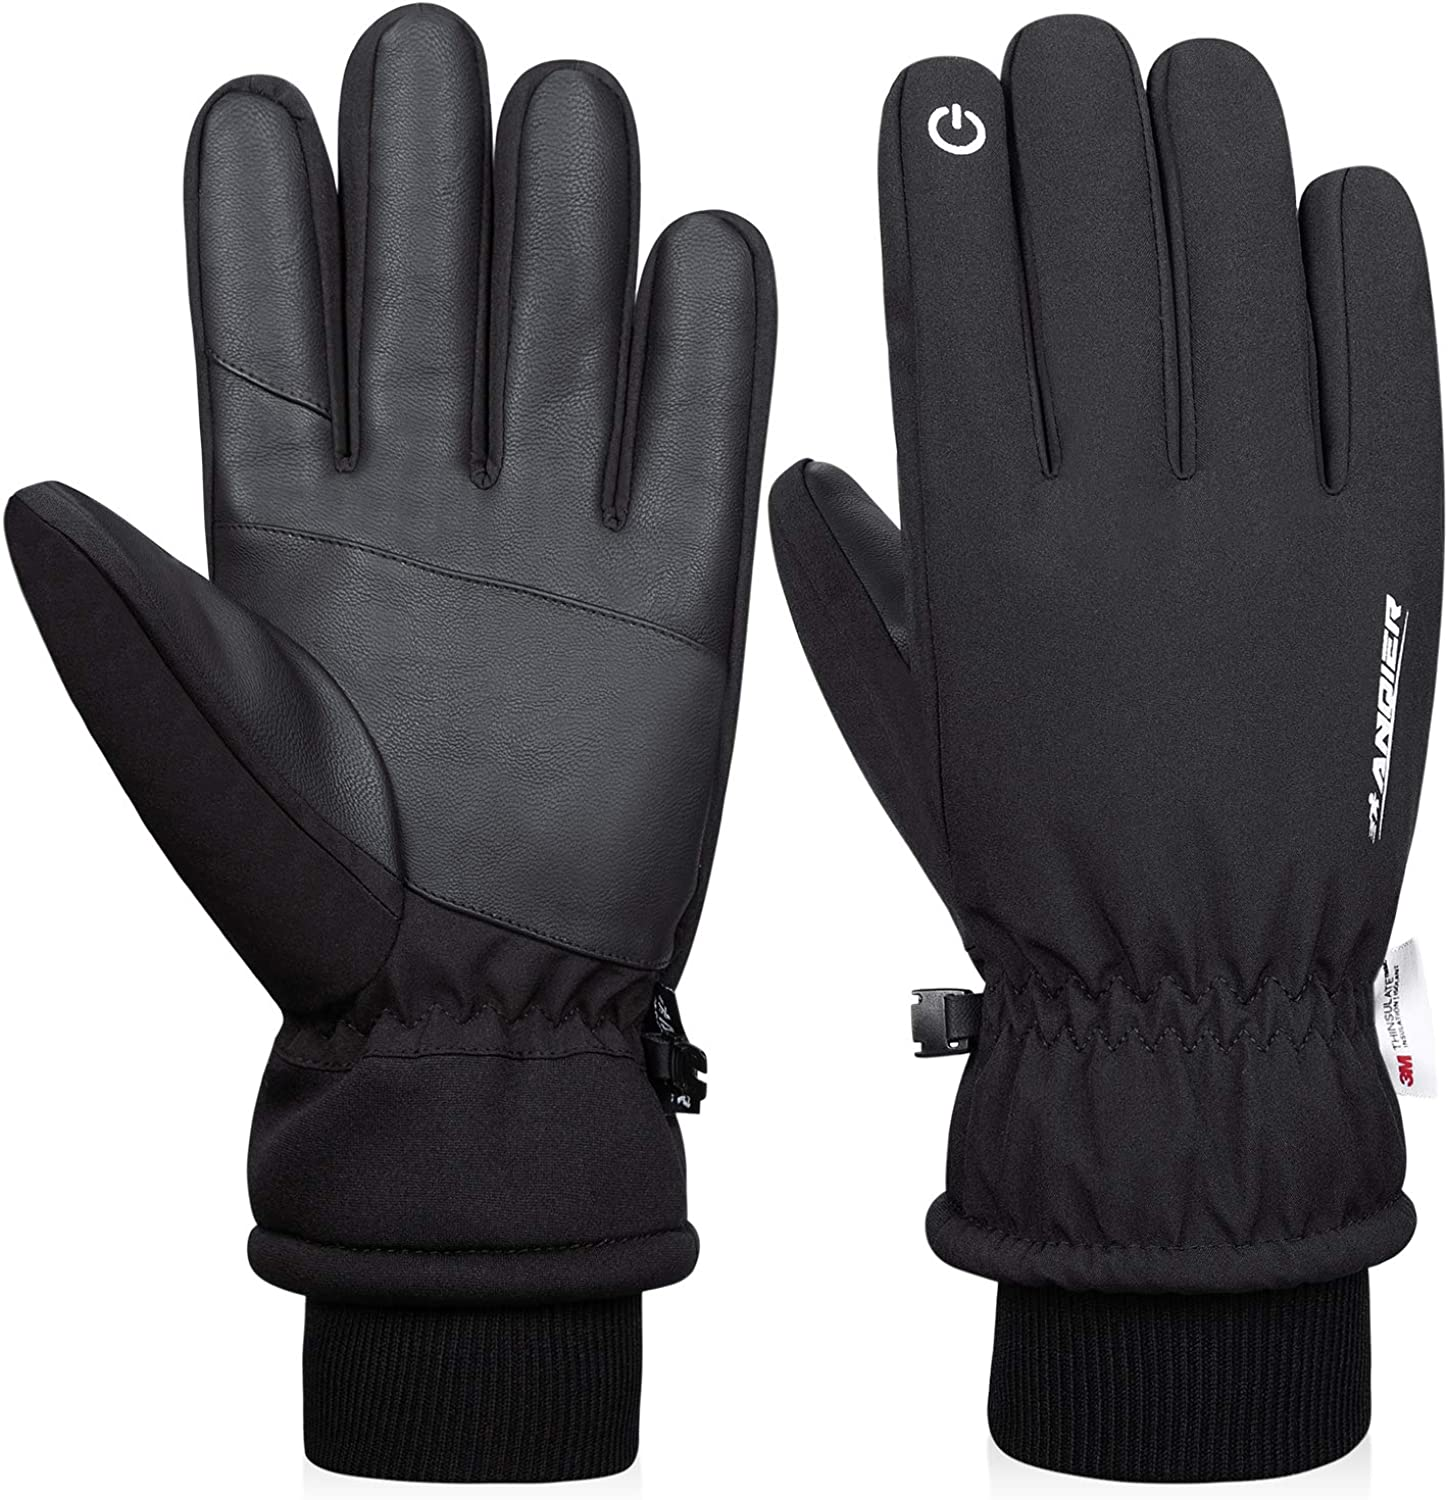 Anqier -30℉ Winter Gloves Touchscreen Gloves Thermal Gloves 3M Thinsulate Windproof Cold Weather Gloves for Running